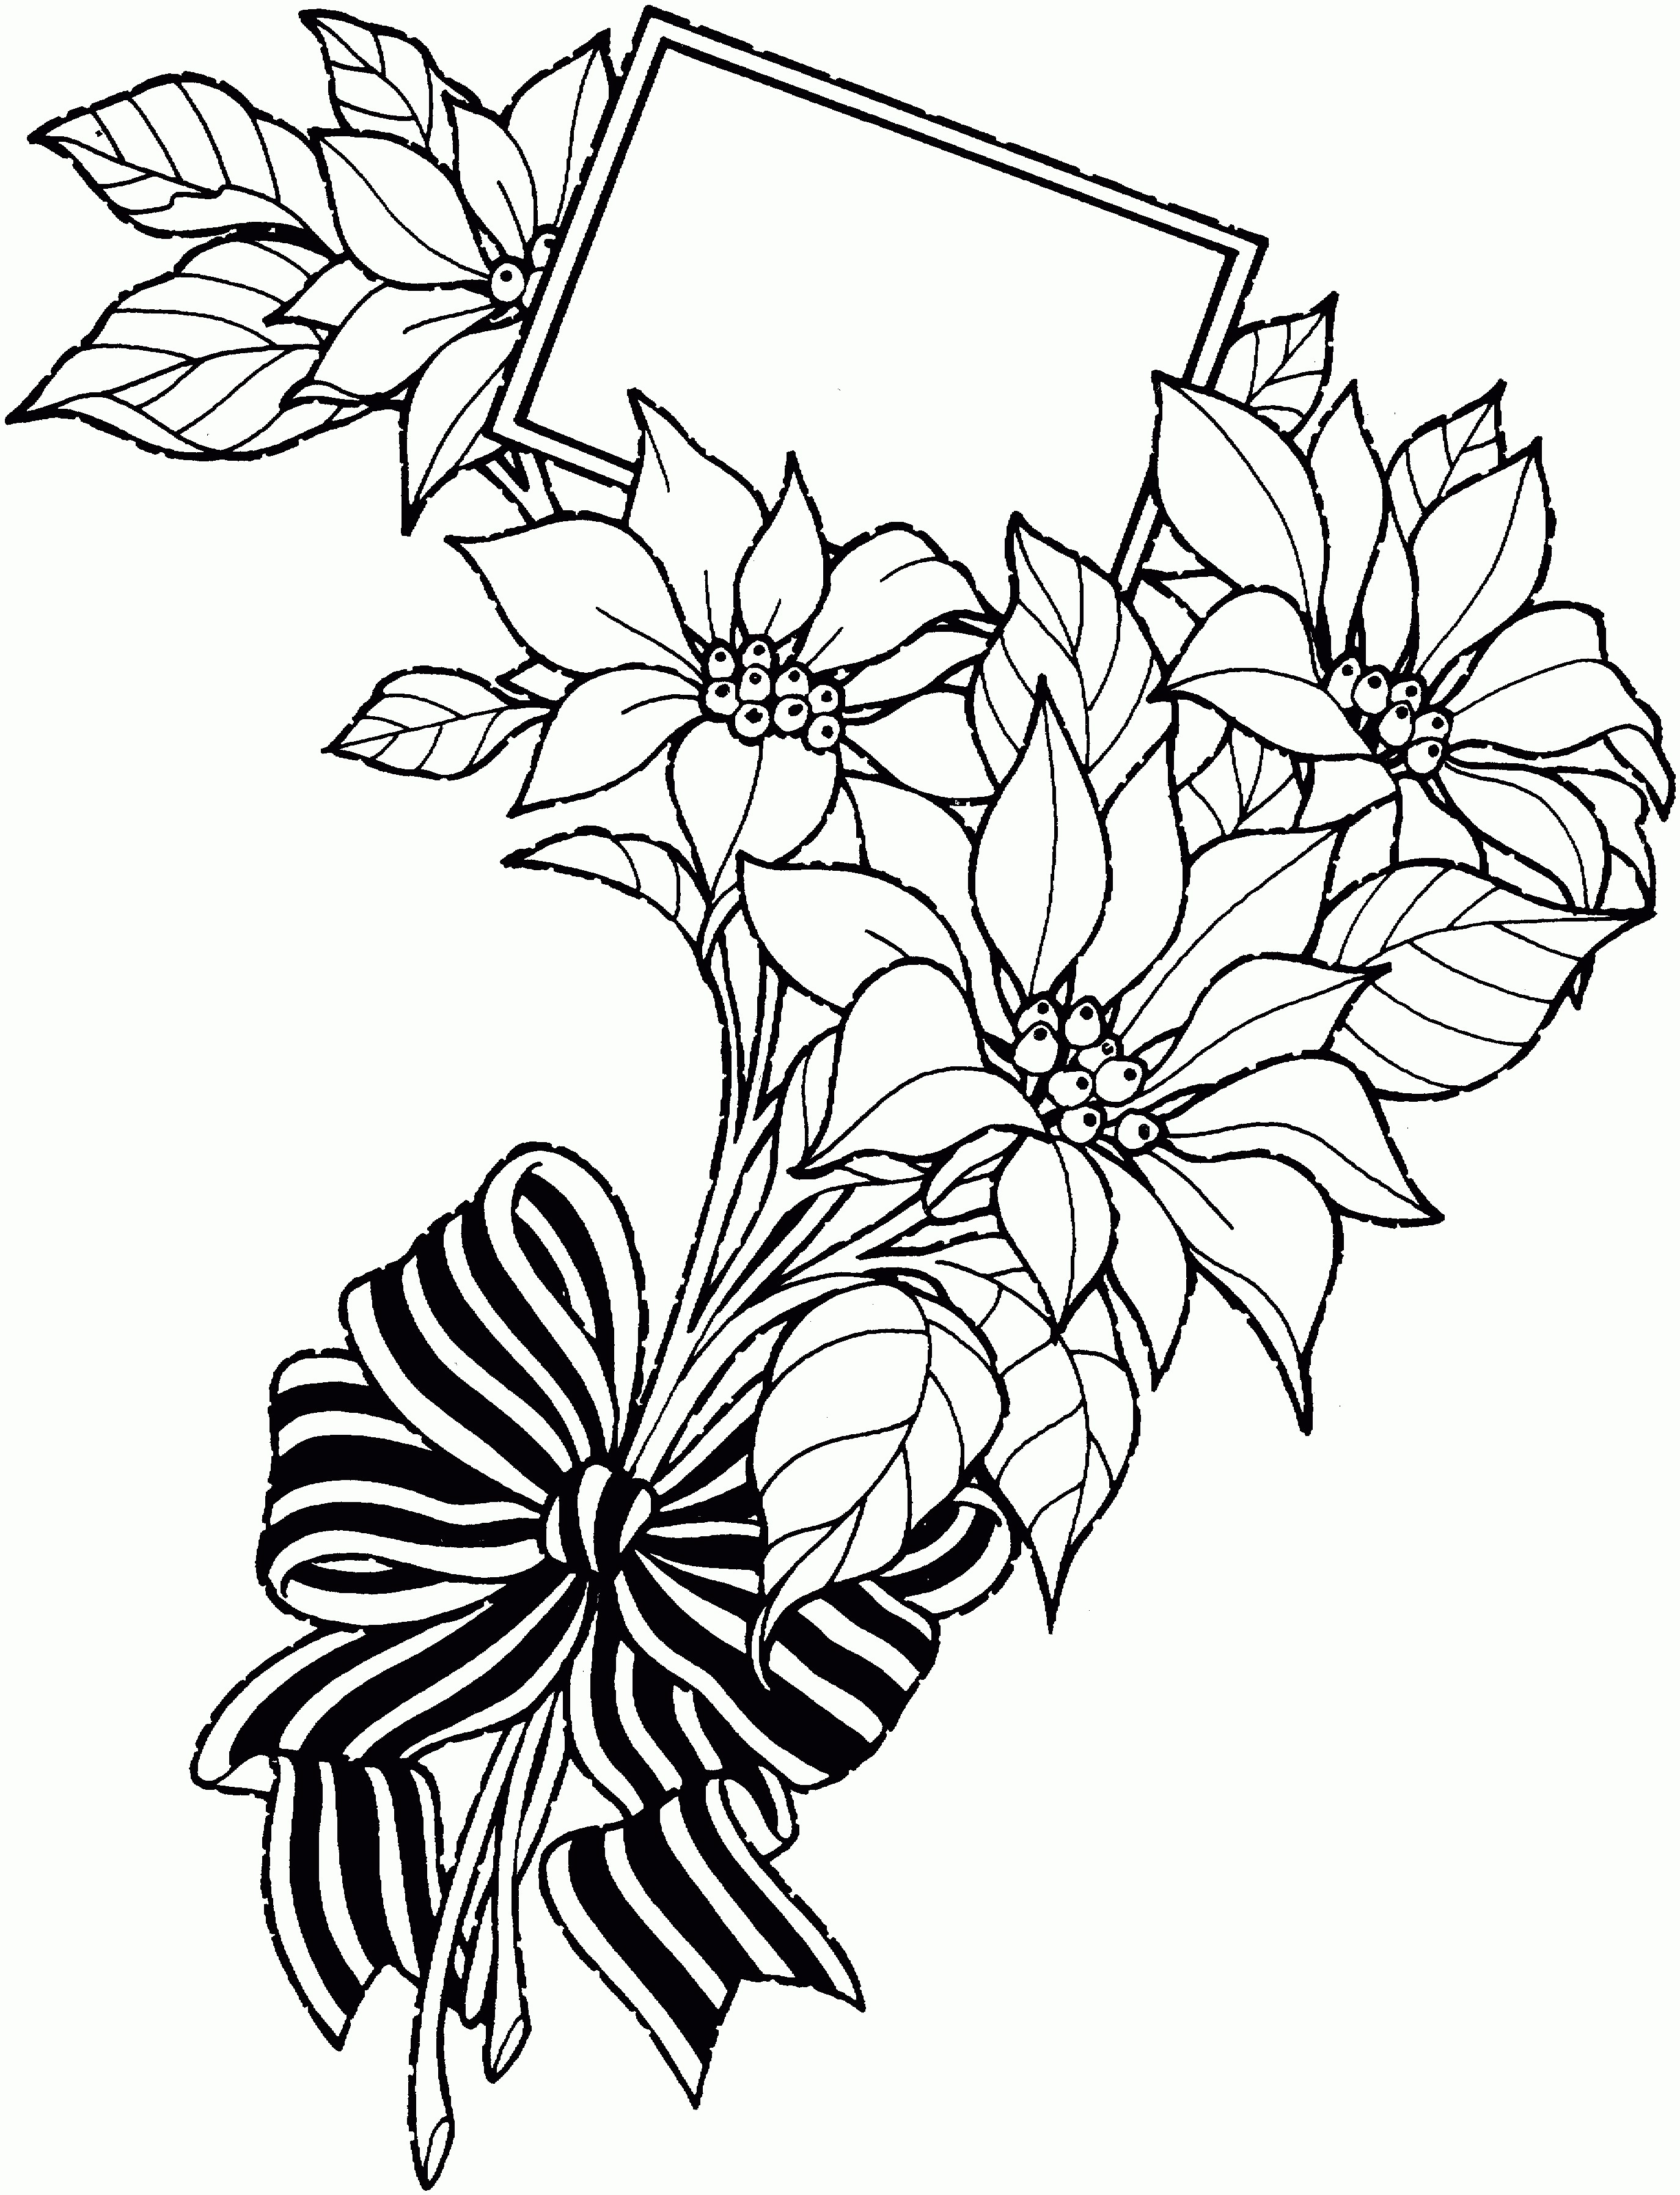 2749x3592 flowers drawing fresh pencil drawing flower bouquet bouquet